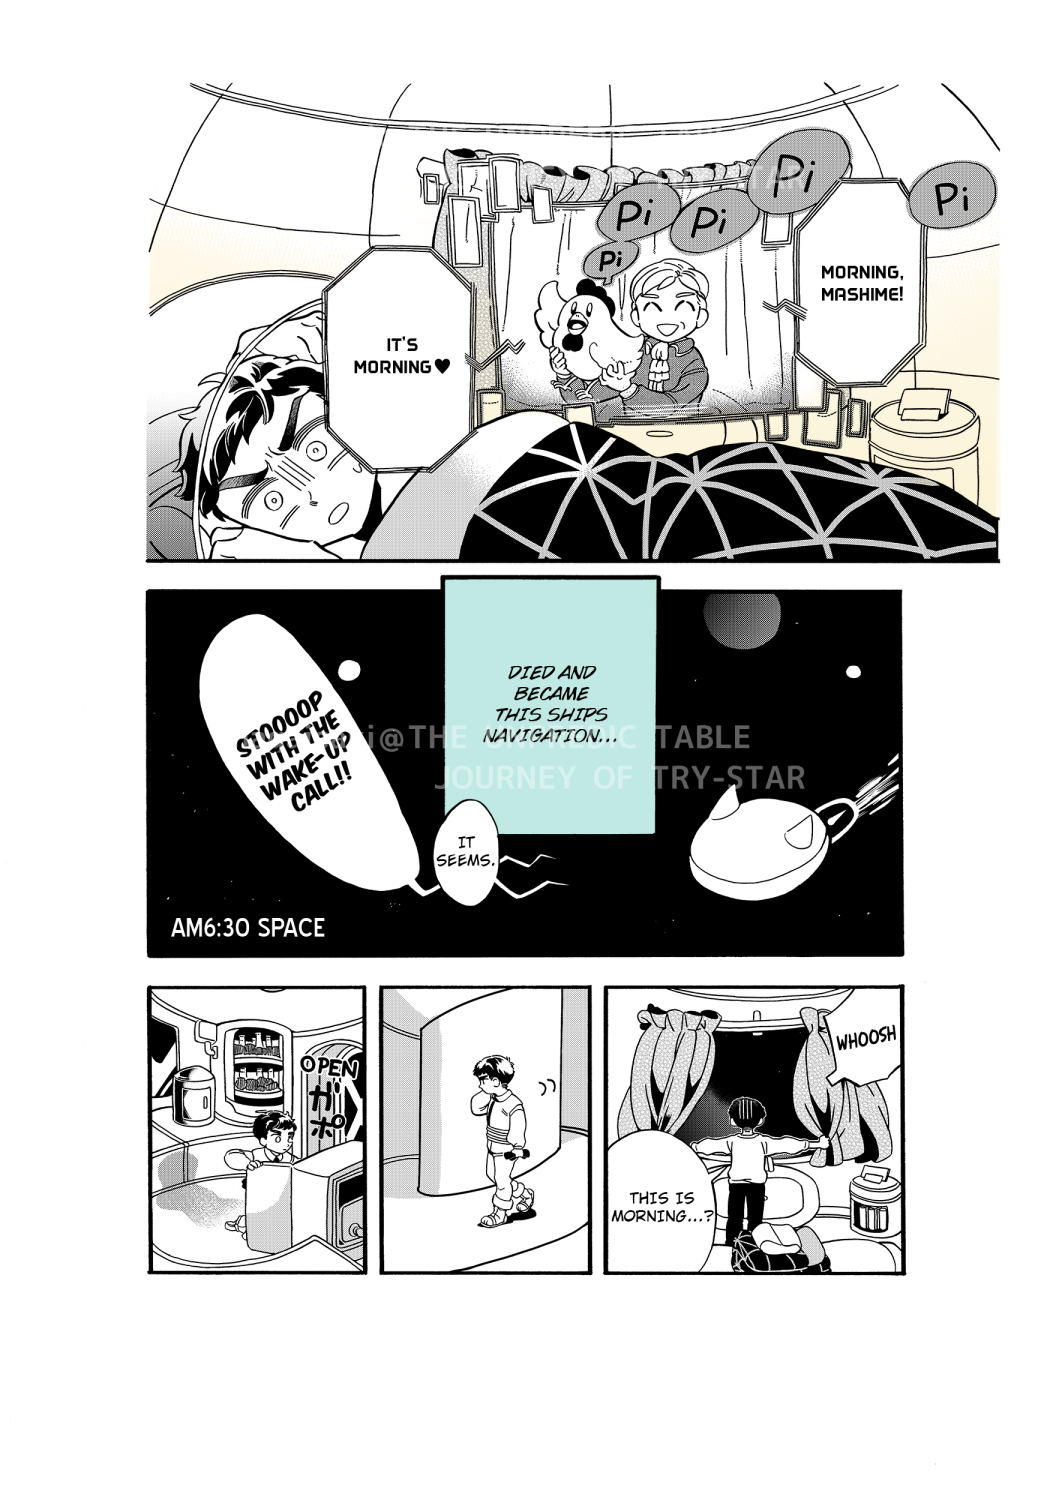 COMIC THE UNPREDICTABLE JOURNEY OF TRY-STAR 4